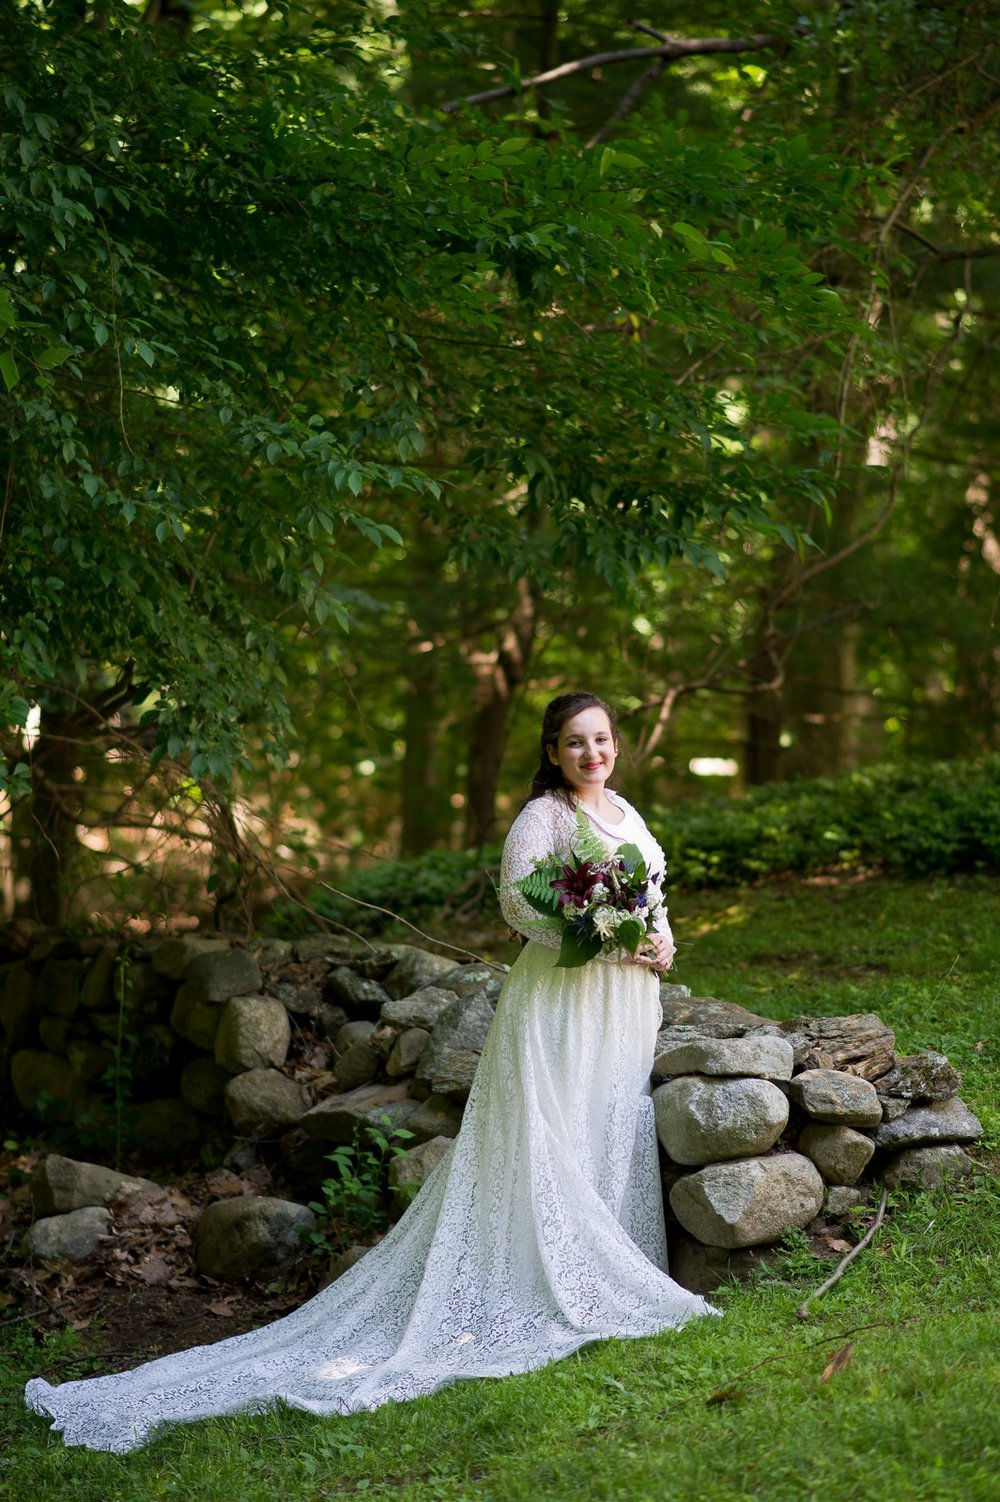 Ma'ayan and Mikey's Traditional Jewish Backyard Wedding in Fairfield, CT Photos by Chaim Schvarcz bride portraits